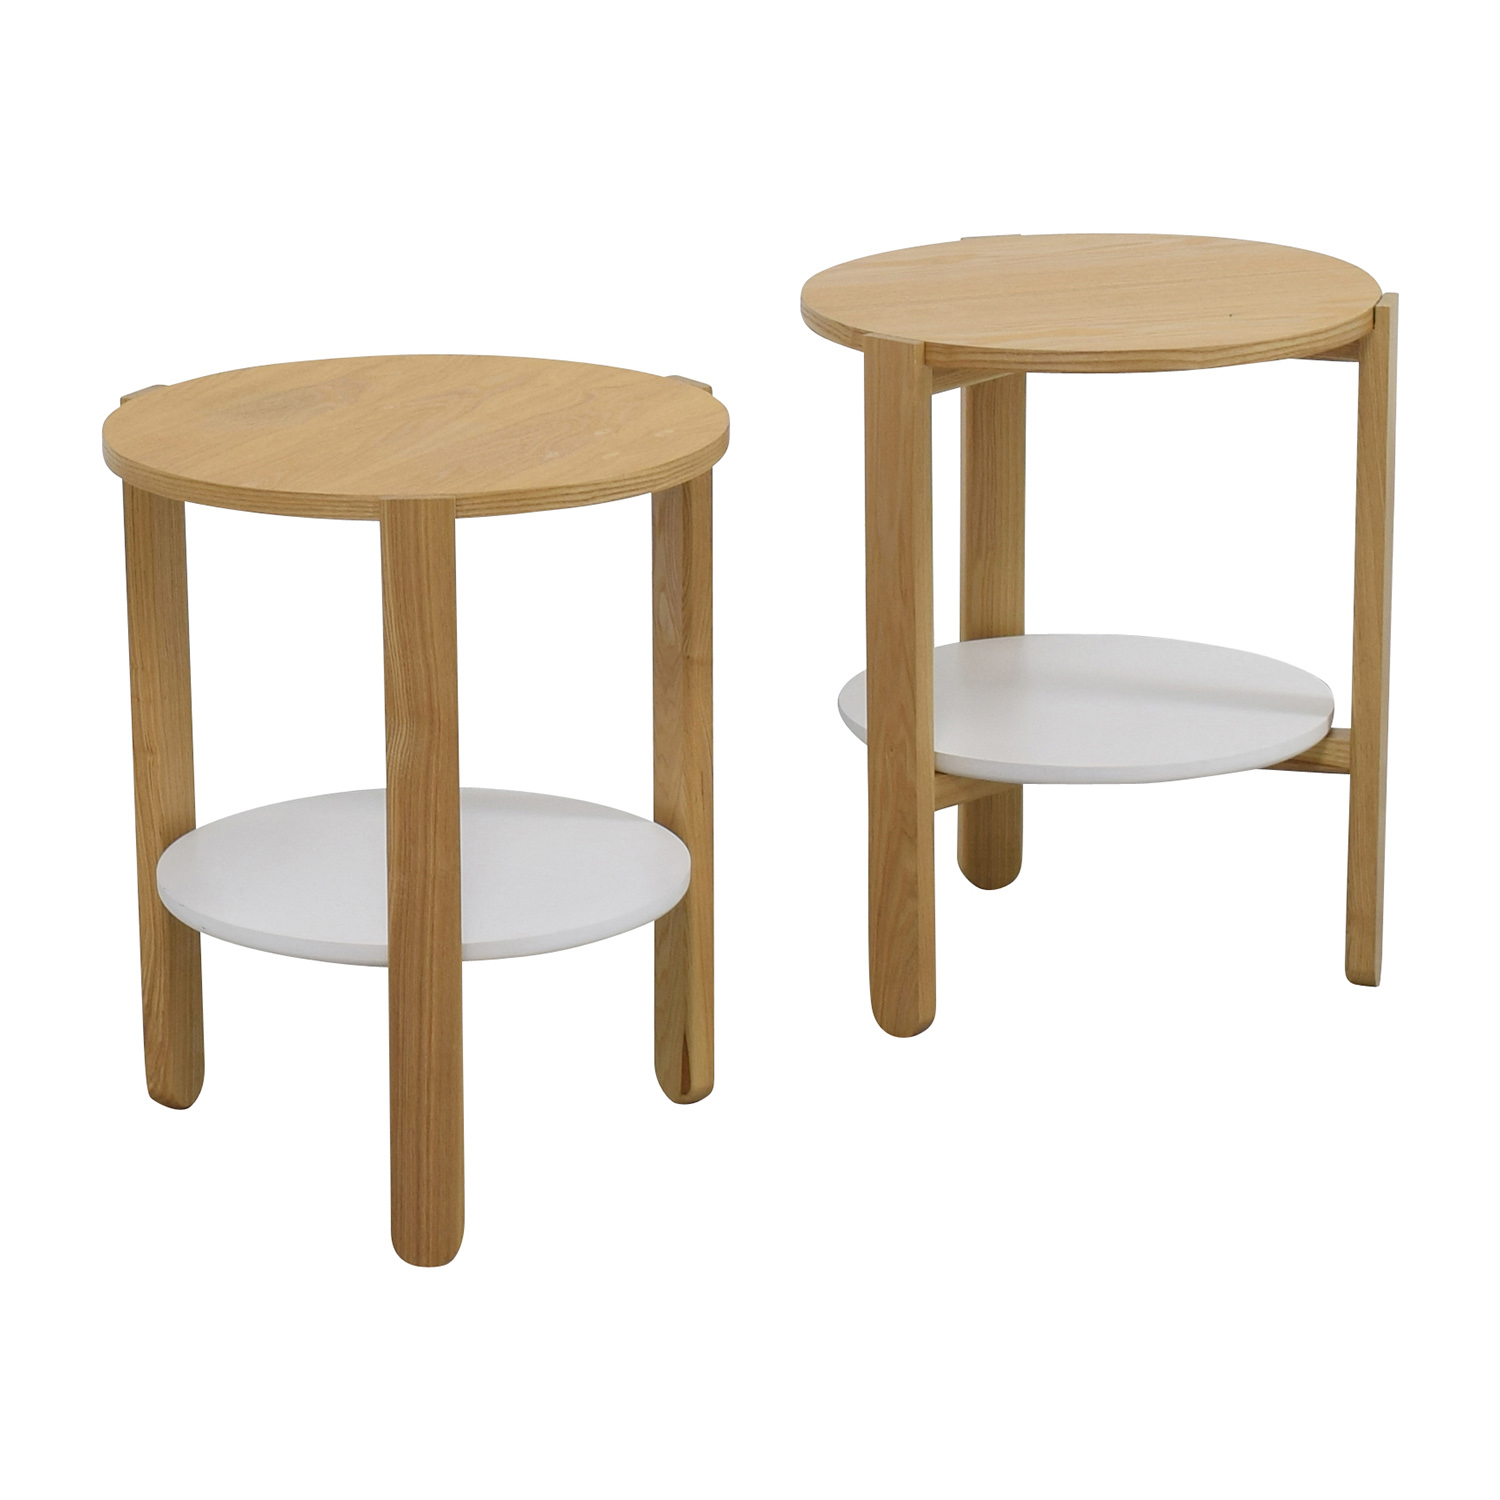 Top Selling Plywood Round Side Wooden Coffee Table And: Umbra Umbra Two-toned Round Wood Side Tables